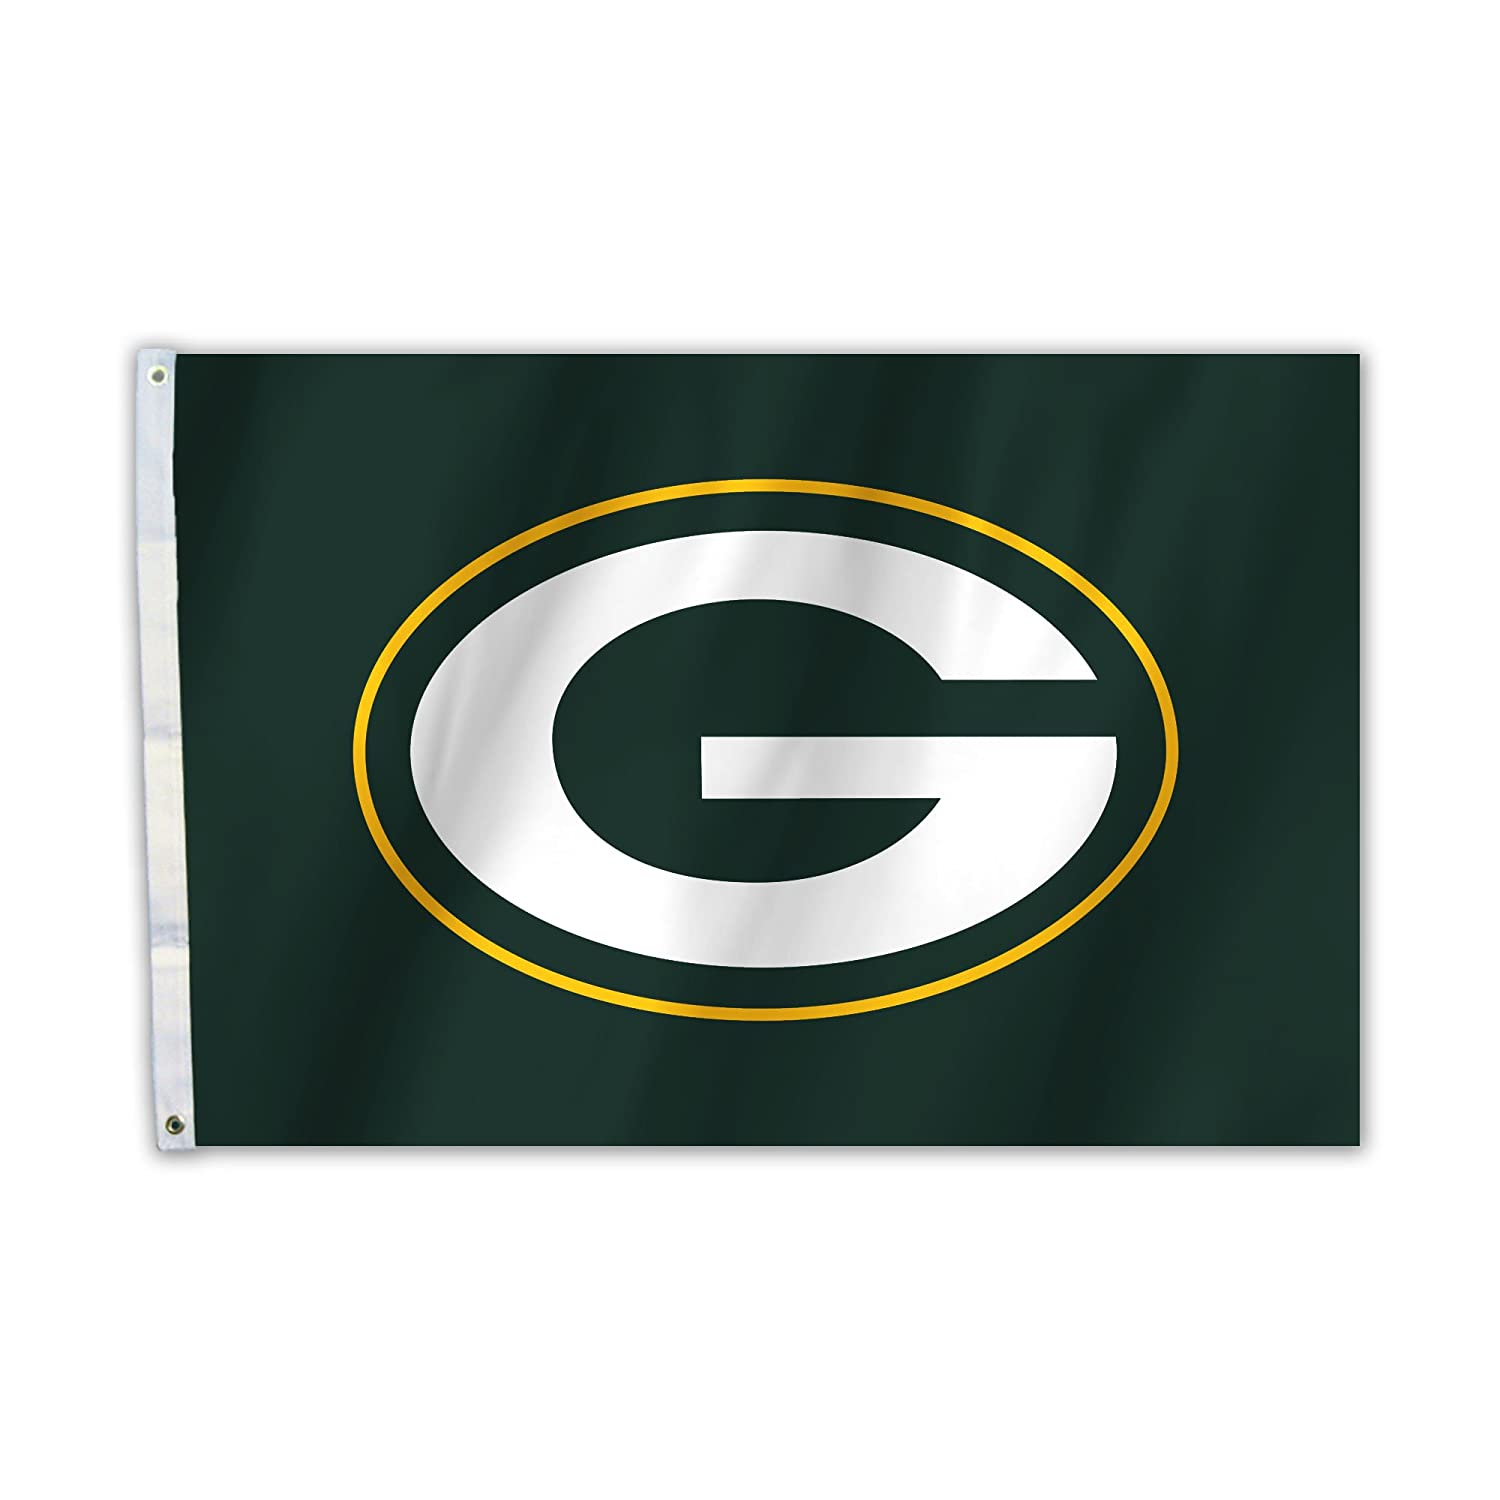 Fremont Die NFL Green Bay Packers Unisex Bay Packers 2 FT. X 3 ft. Flag W/Grommetts, One size 92016B